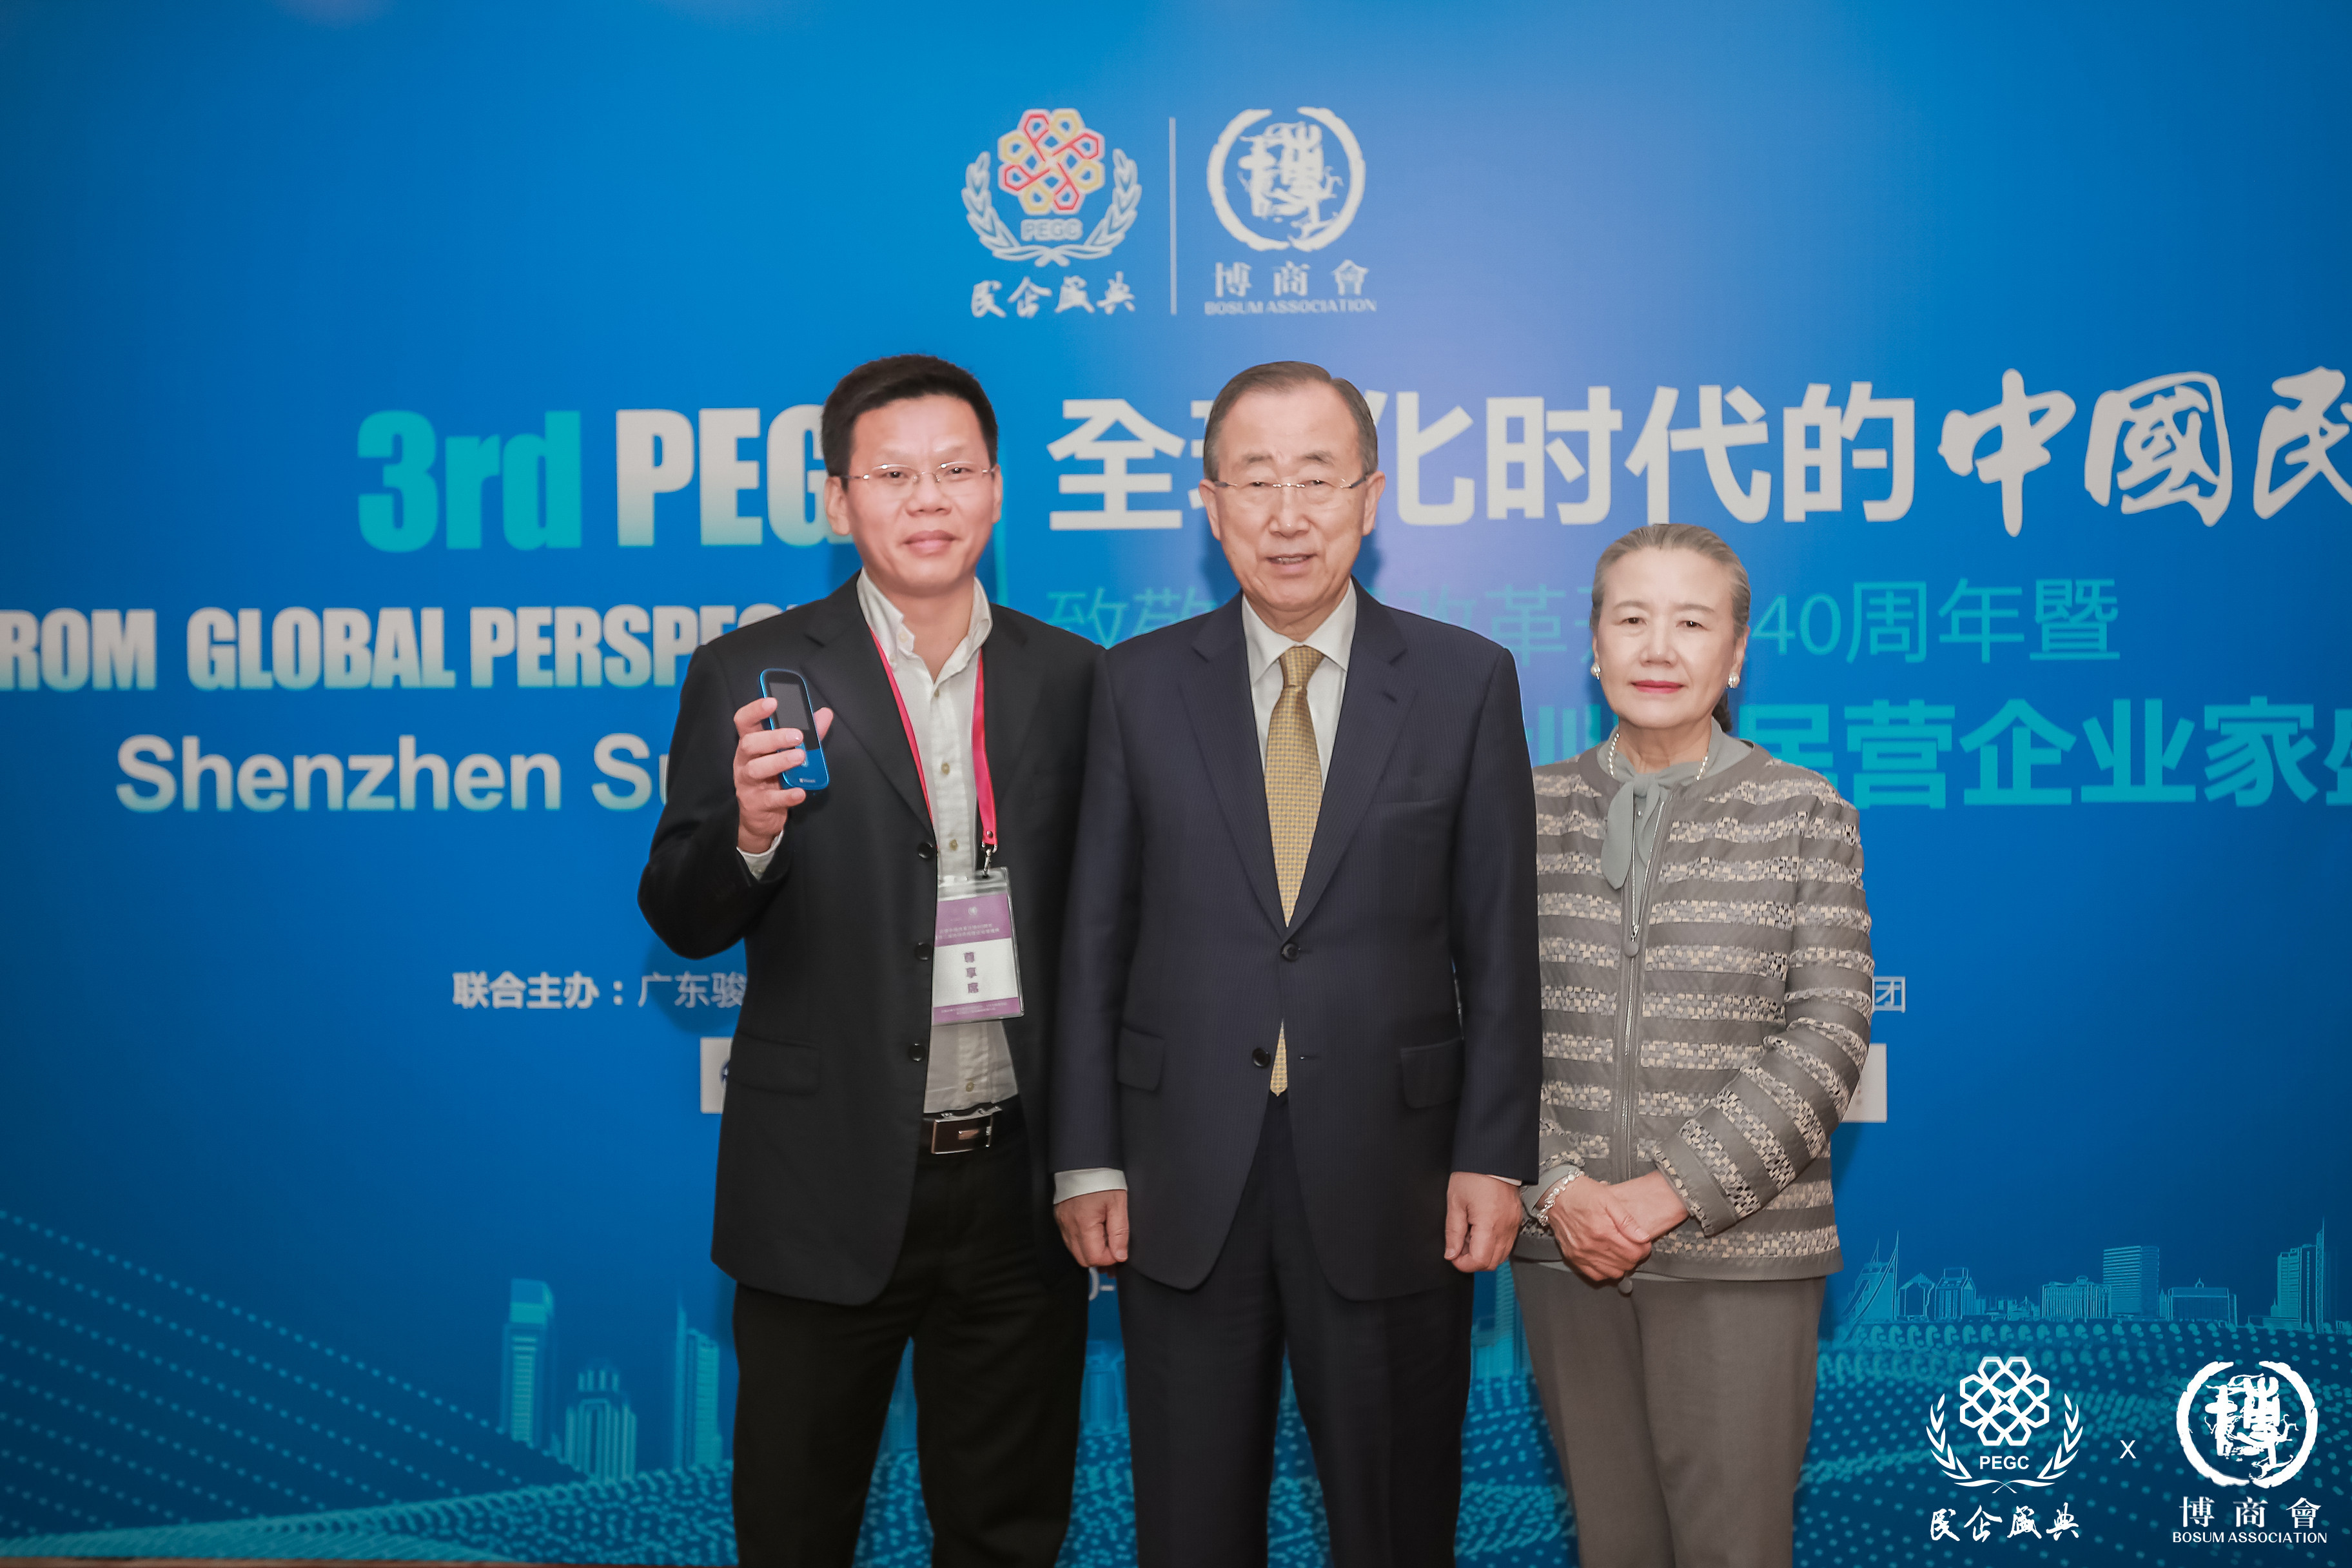 The Third Shenzhen PEGC has successfully concluded.